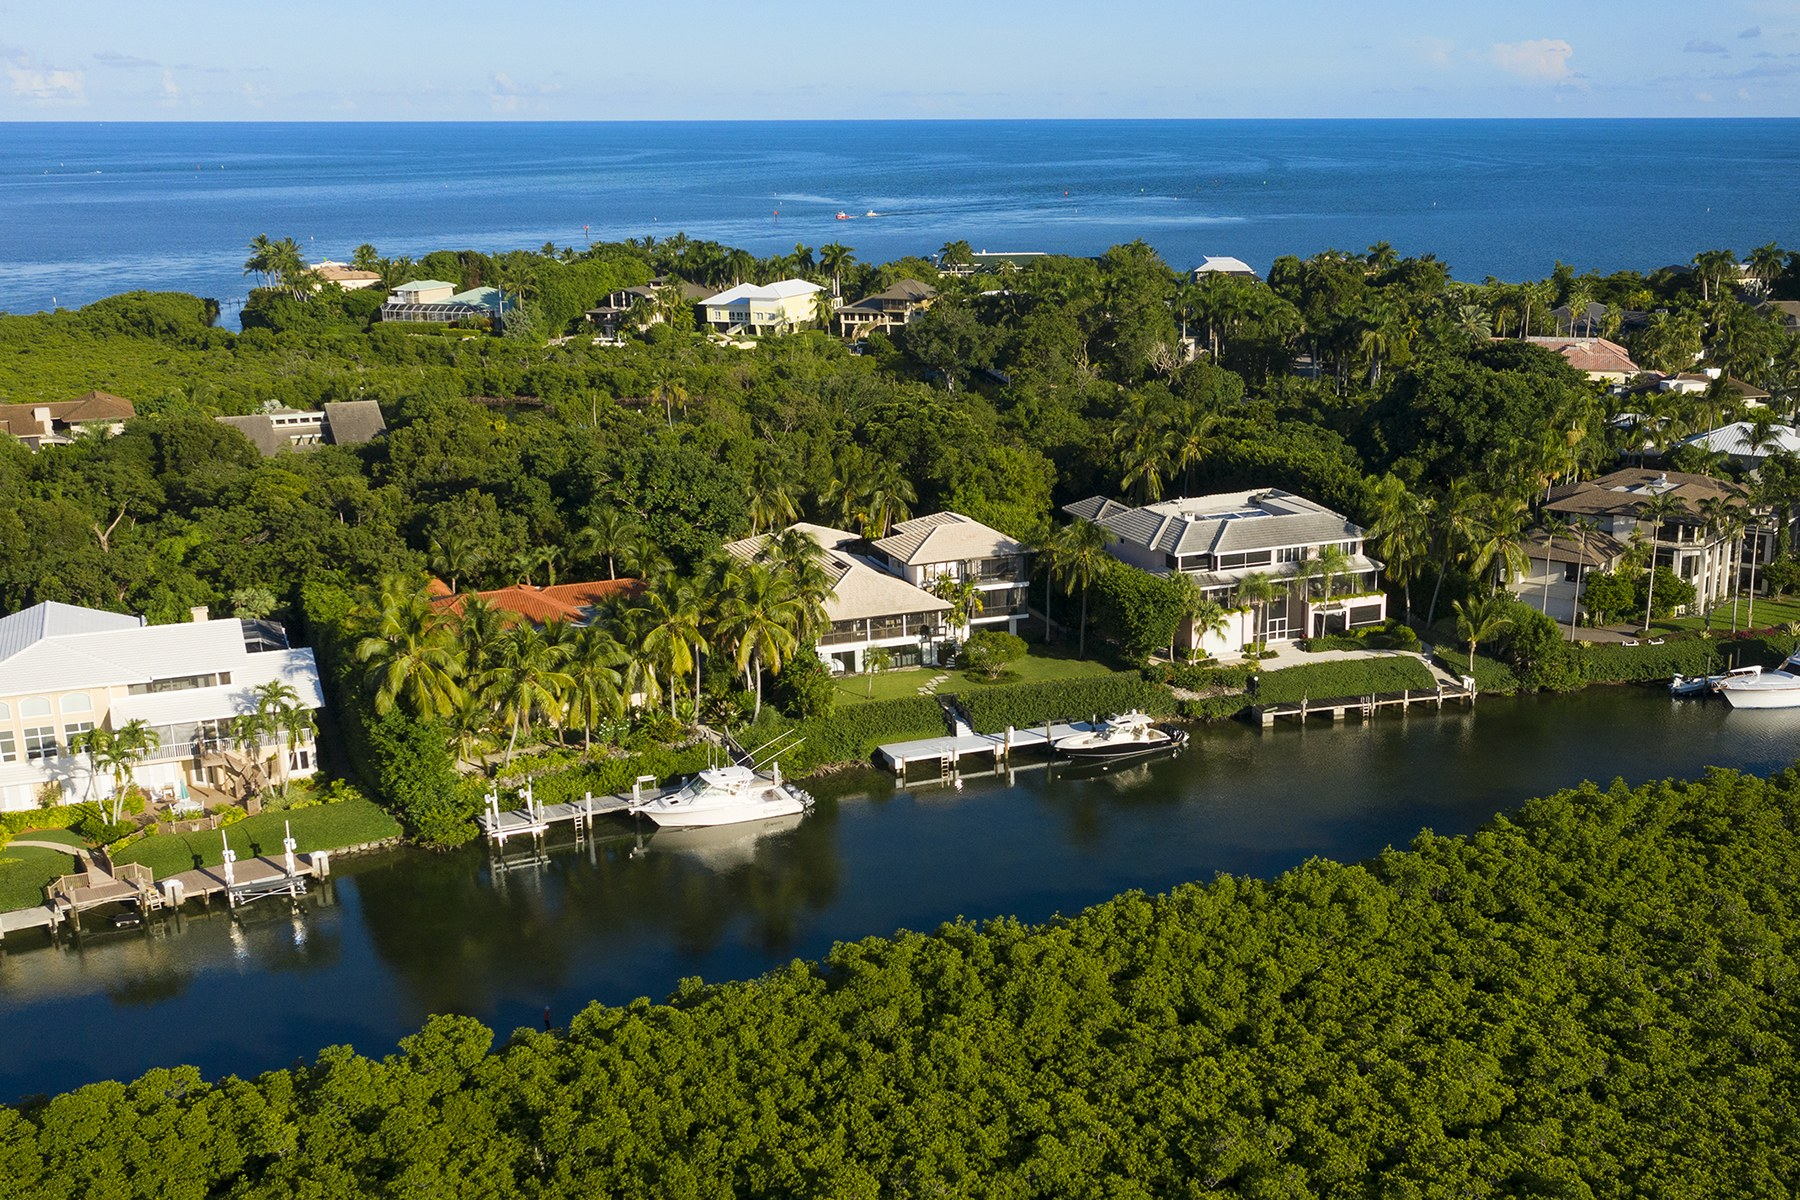 Single Family Homes for Sale at 31 Cardinal Lane, Key Largo, FL 31 Cardinal Lane Key Largo, Florida 33037 United States